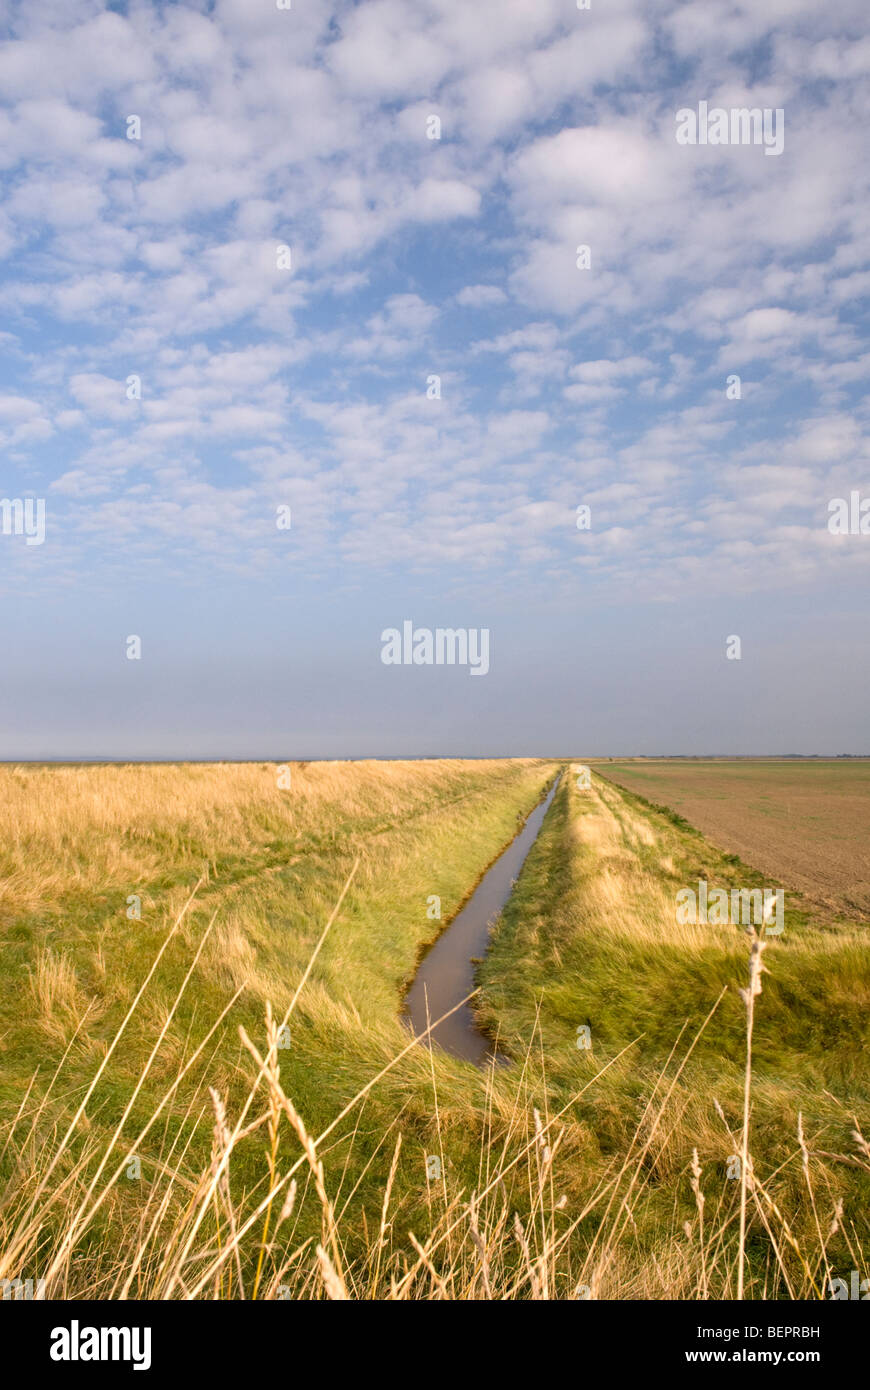 An agricultural flood control drainage ditch, Lincolnshire, England. Stock Photo